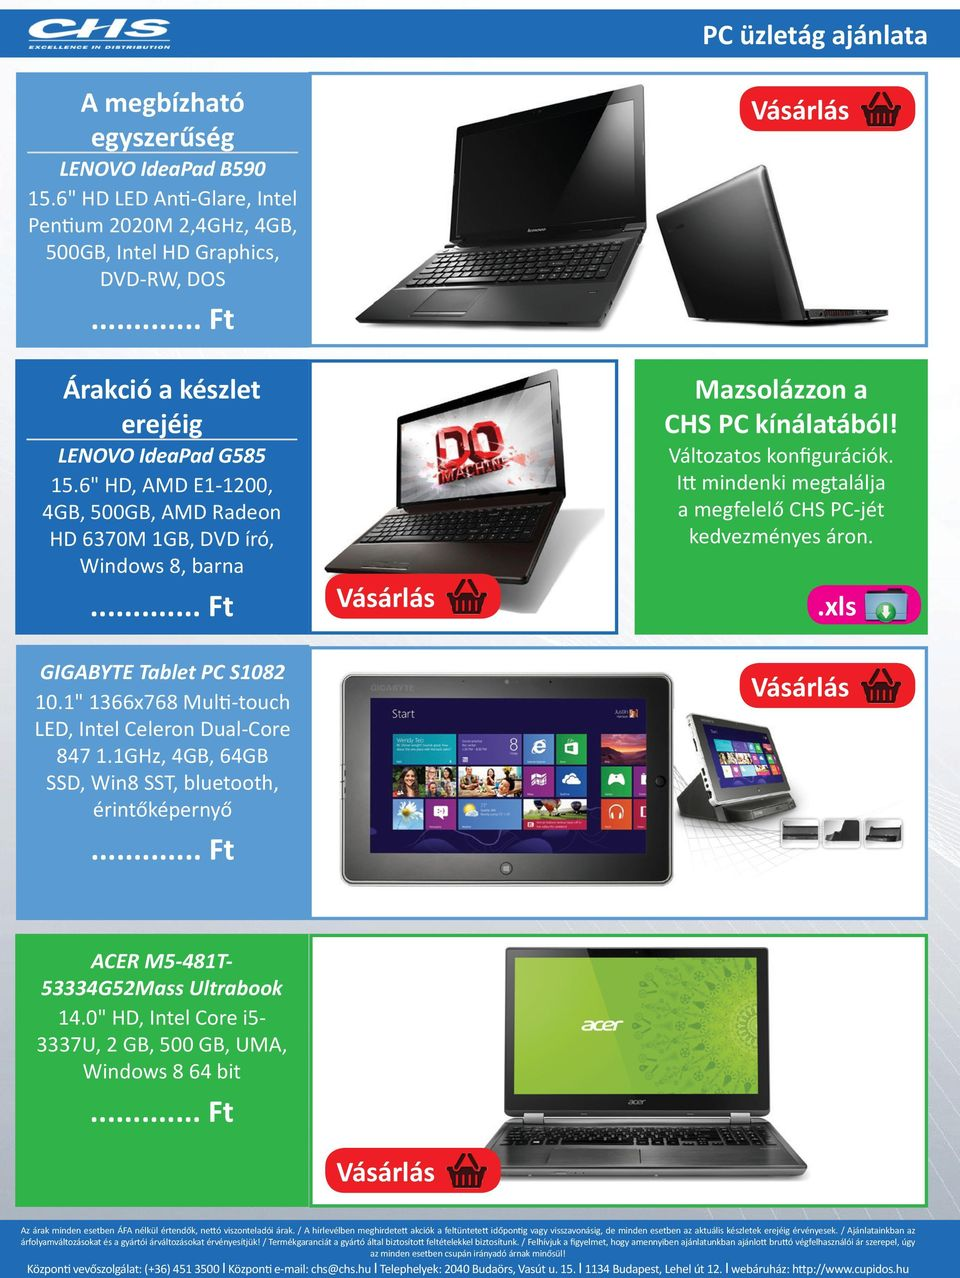 "6"" HD, AMD E1-1200, 4GB, 500GB, AMD Radeon HD 6370M 1GB, DVD író, Windows 8, barna GIGABYTE Tablet PC S1082 10."